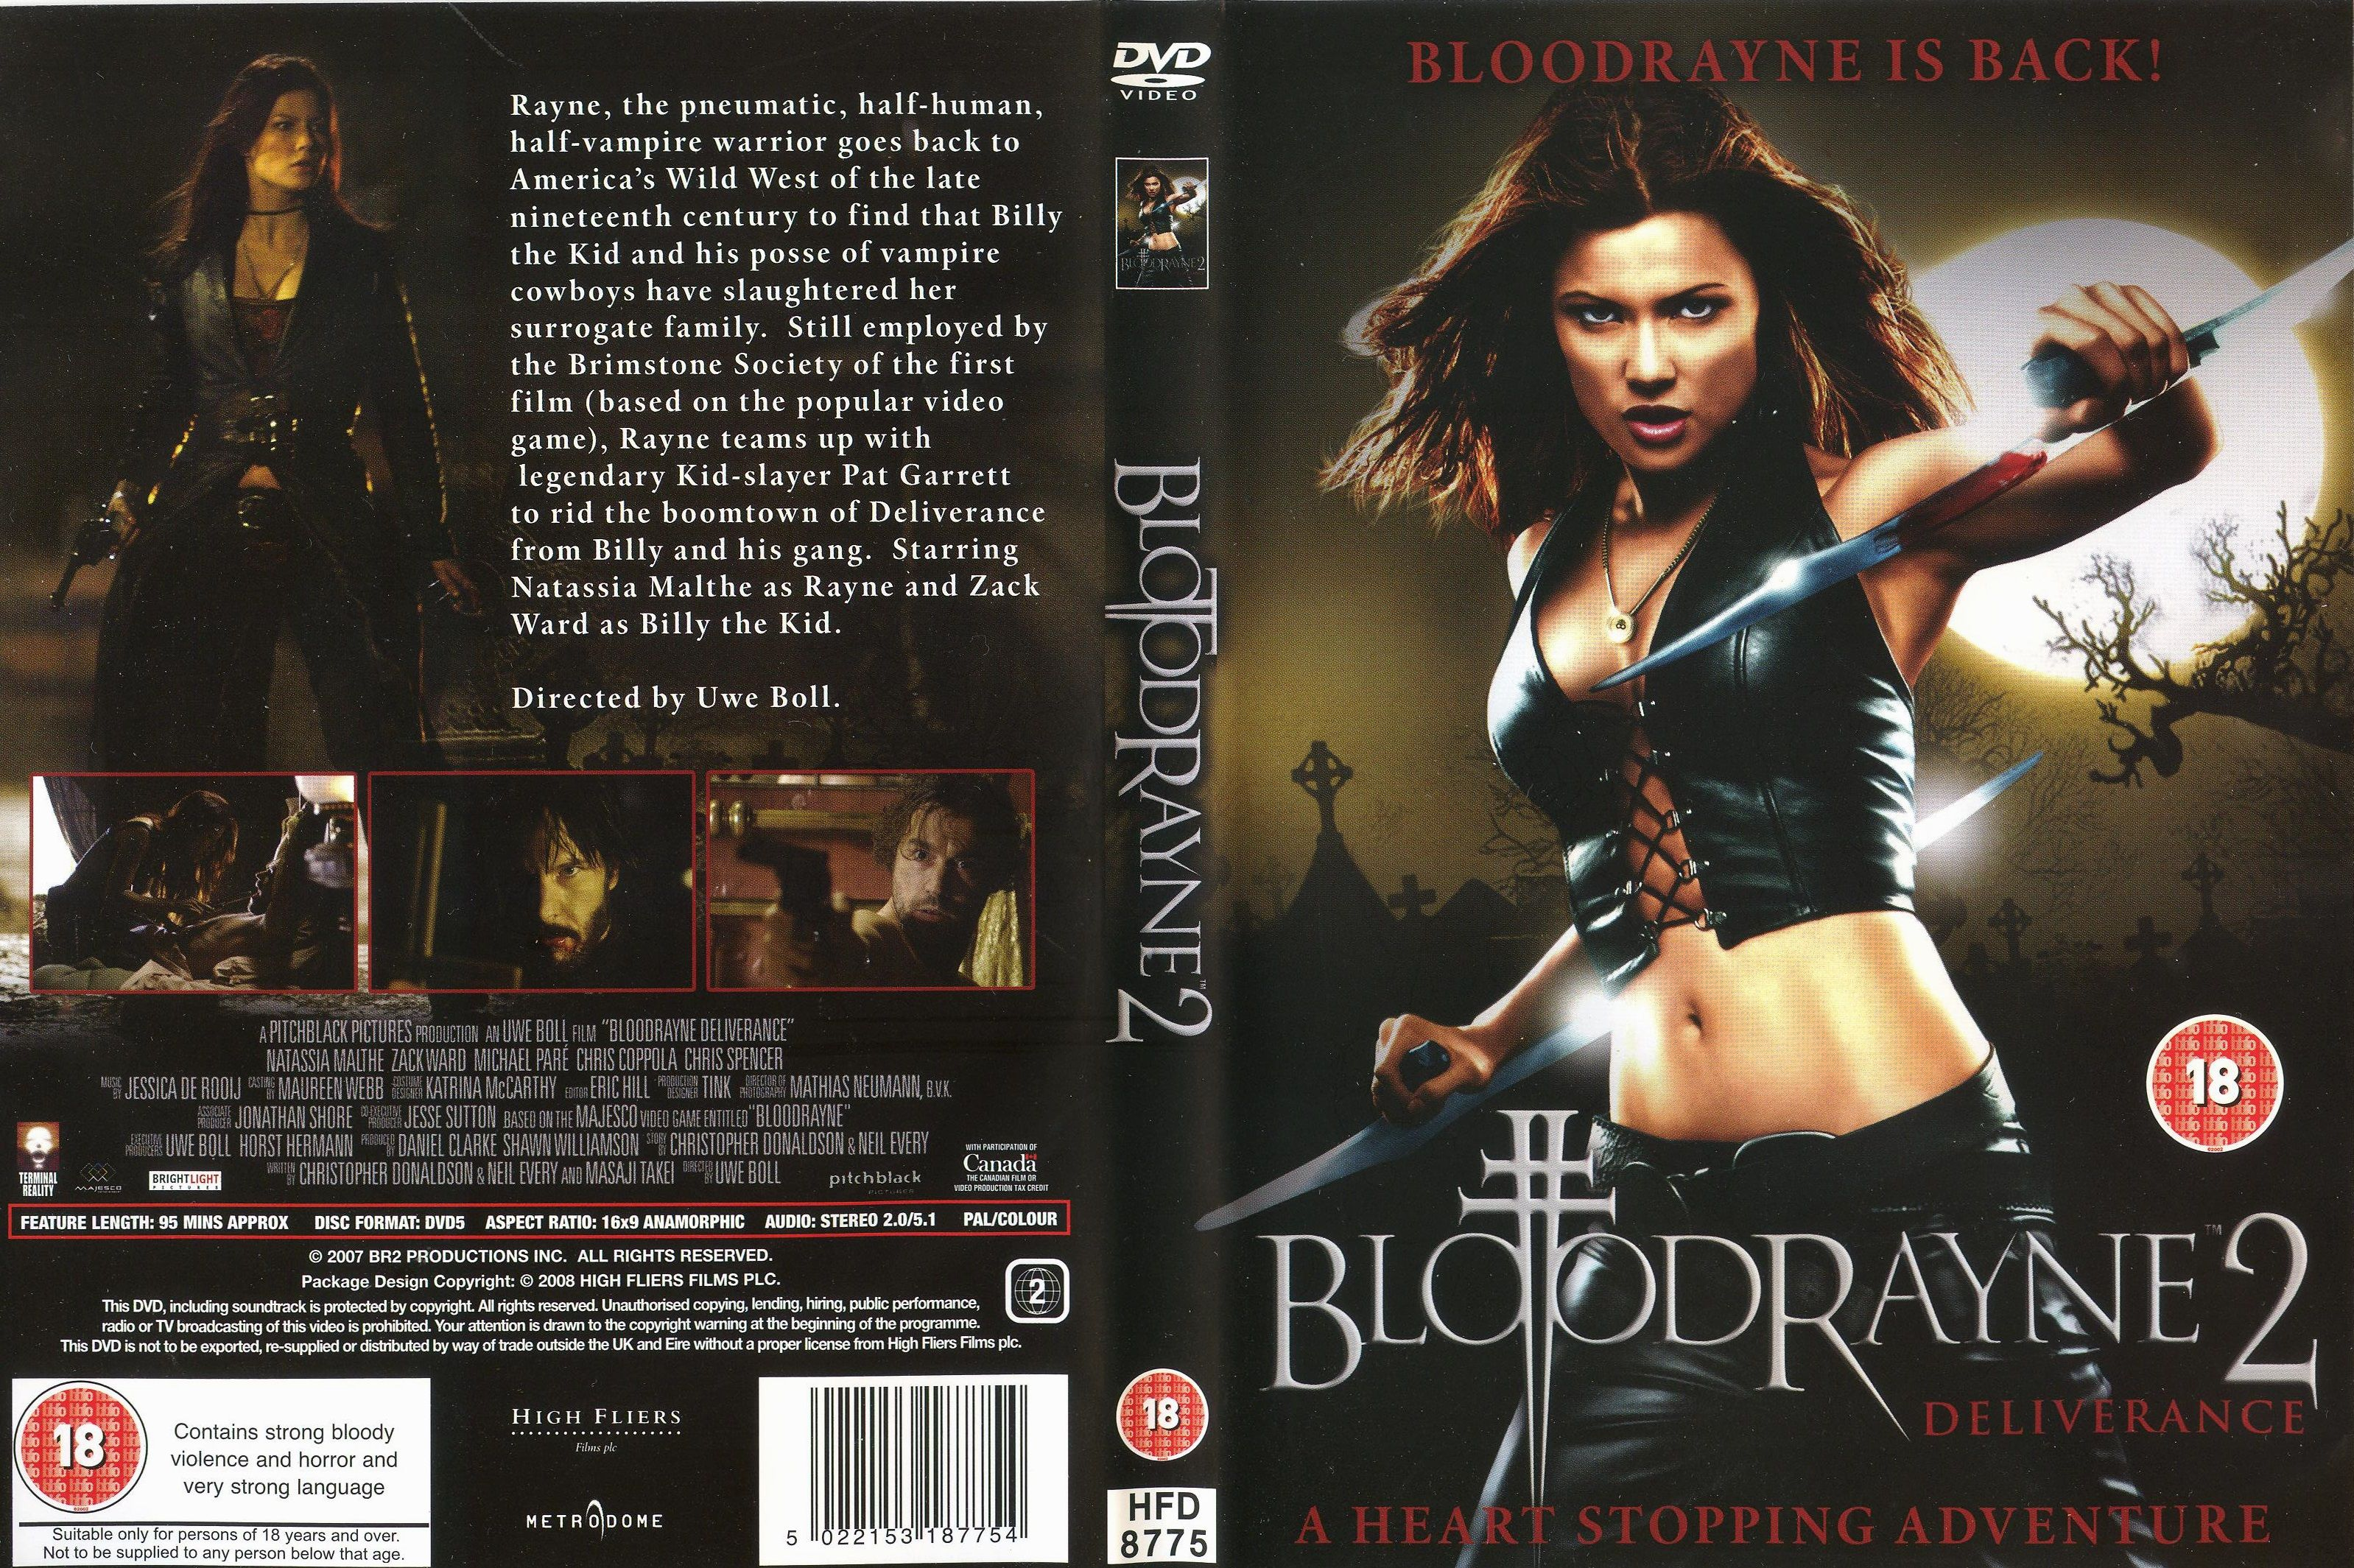 Bloodrayne 2 Deliverance 2007 Canada Germany Billy The Kids